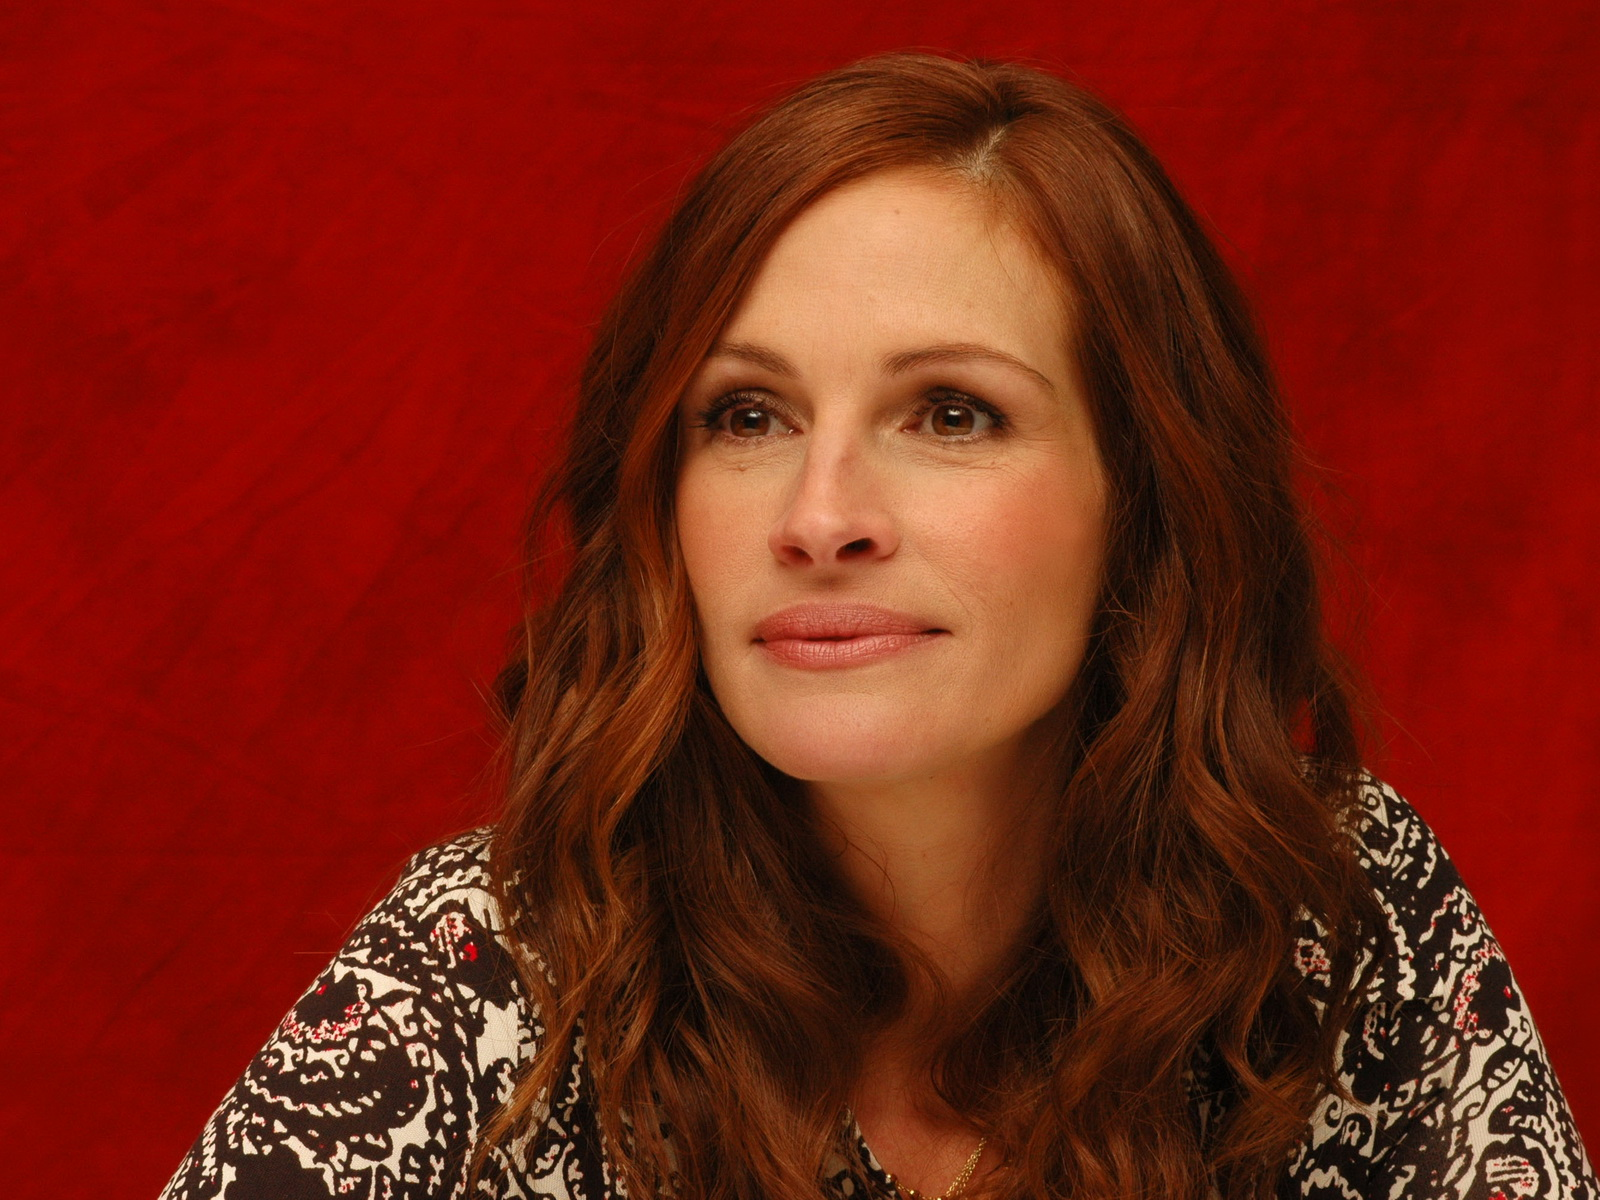 julia roberts Julia roberts is an academy award-winning actress and one of hollywood's top stars, known for such films as 'steel magnolias,' 'pretty woman' and 'erin brockovich' actress julia fiona roberts was.